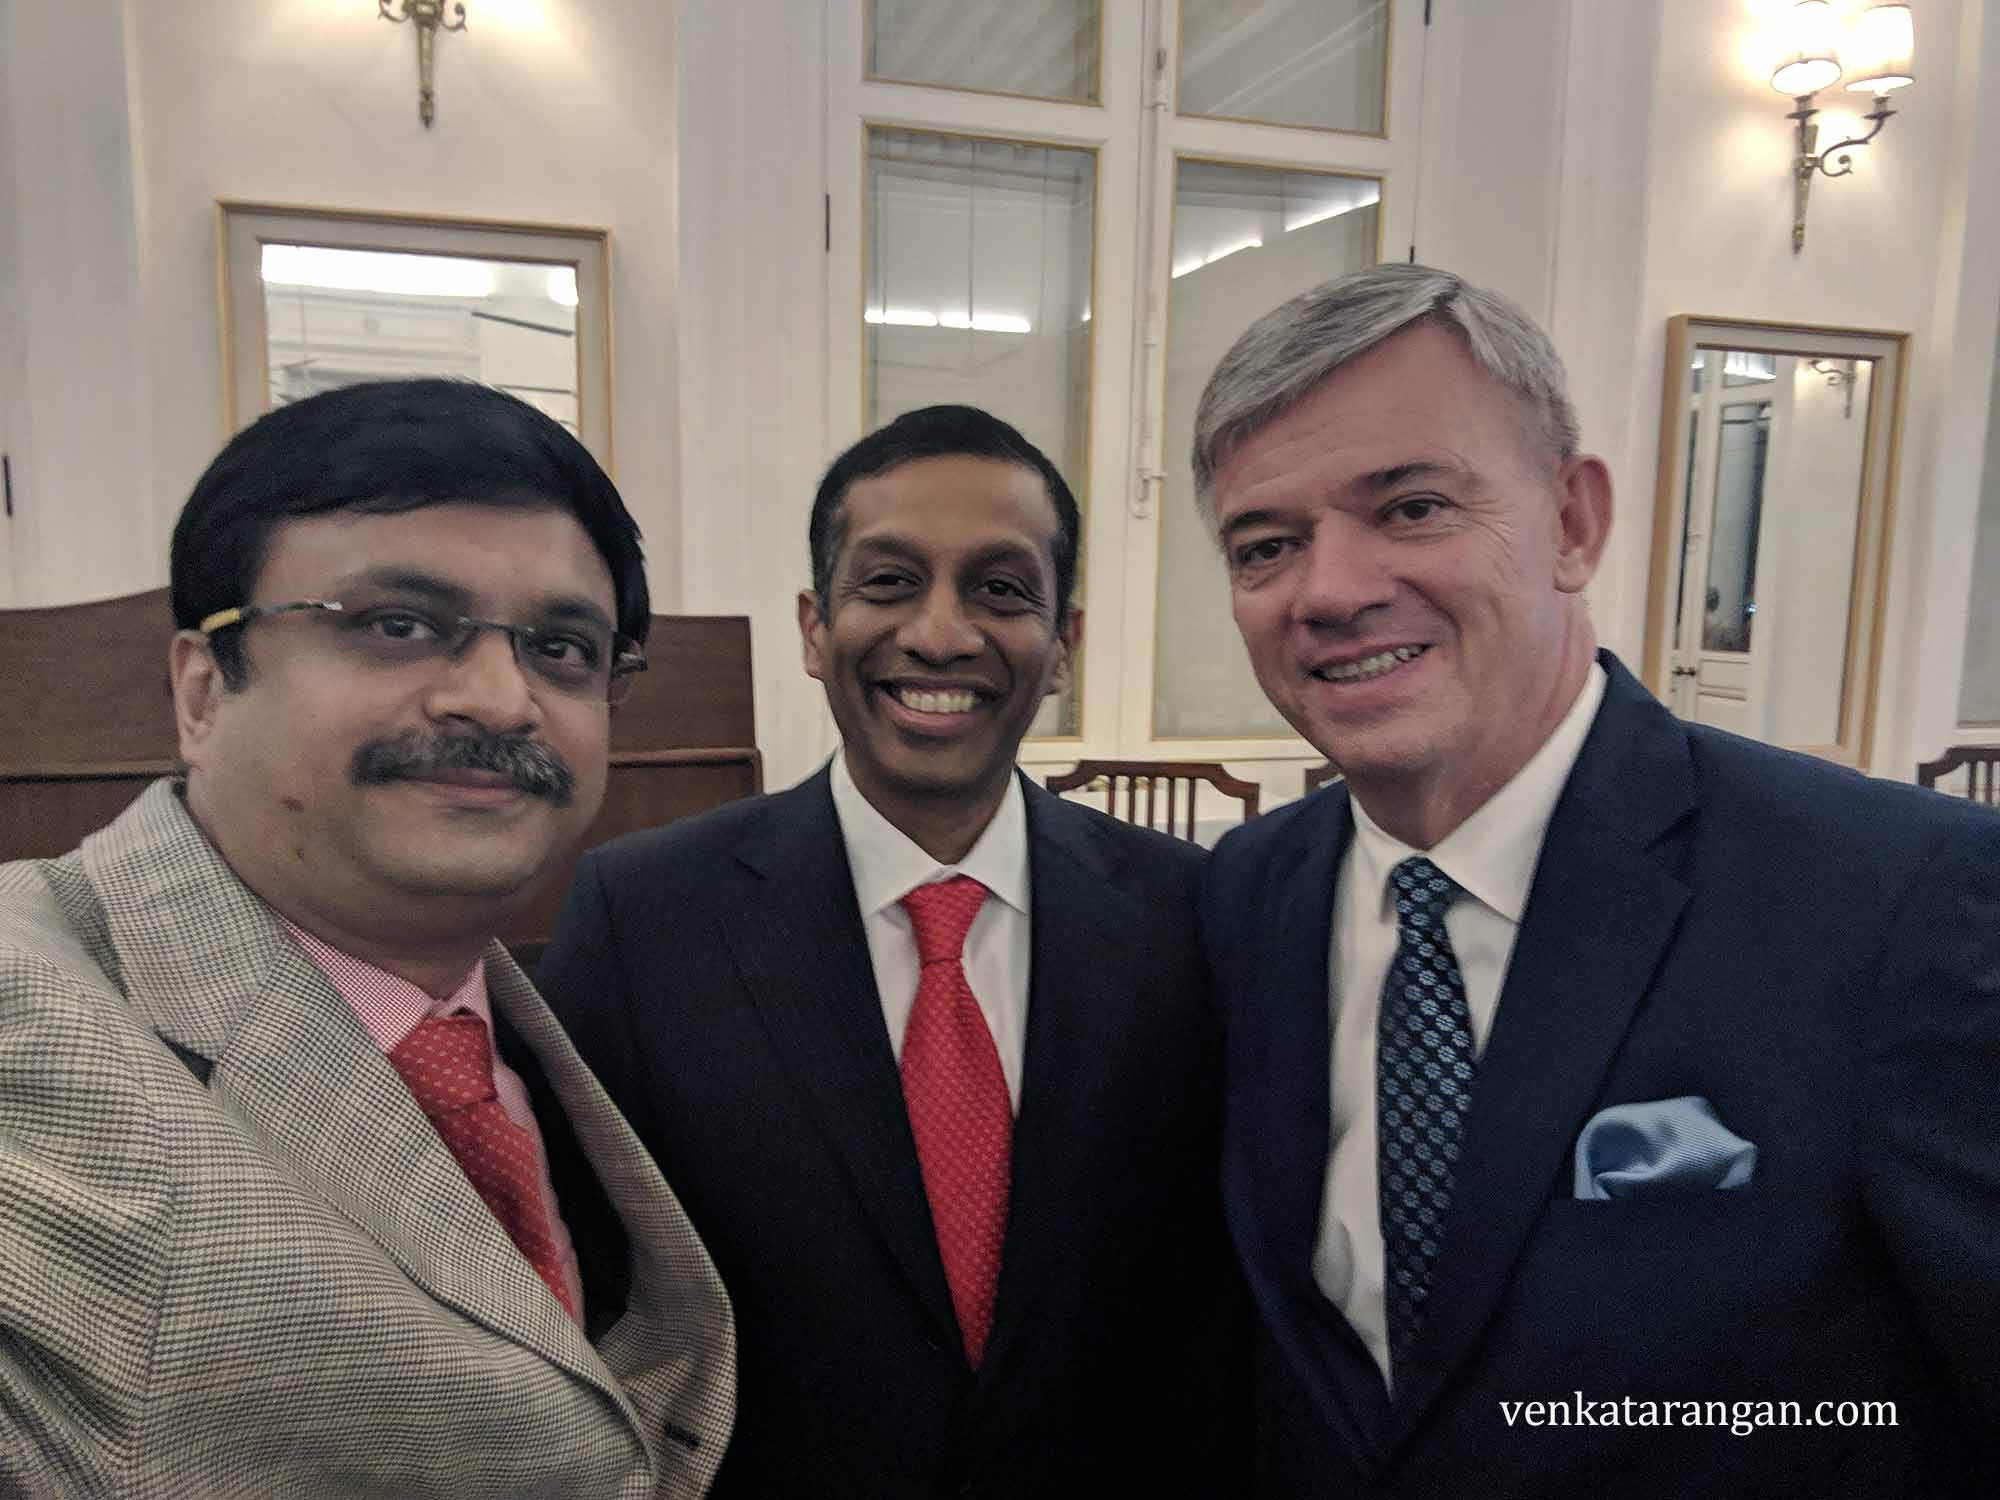 With Mr Ar Rm Arun (Honorary Consul of the Czech Republic in Chennai) and His Excellency H.E. Mr Milan Hovorka (Ambassador of the Czech Republic to India),